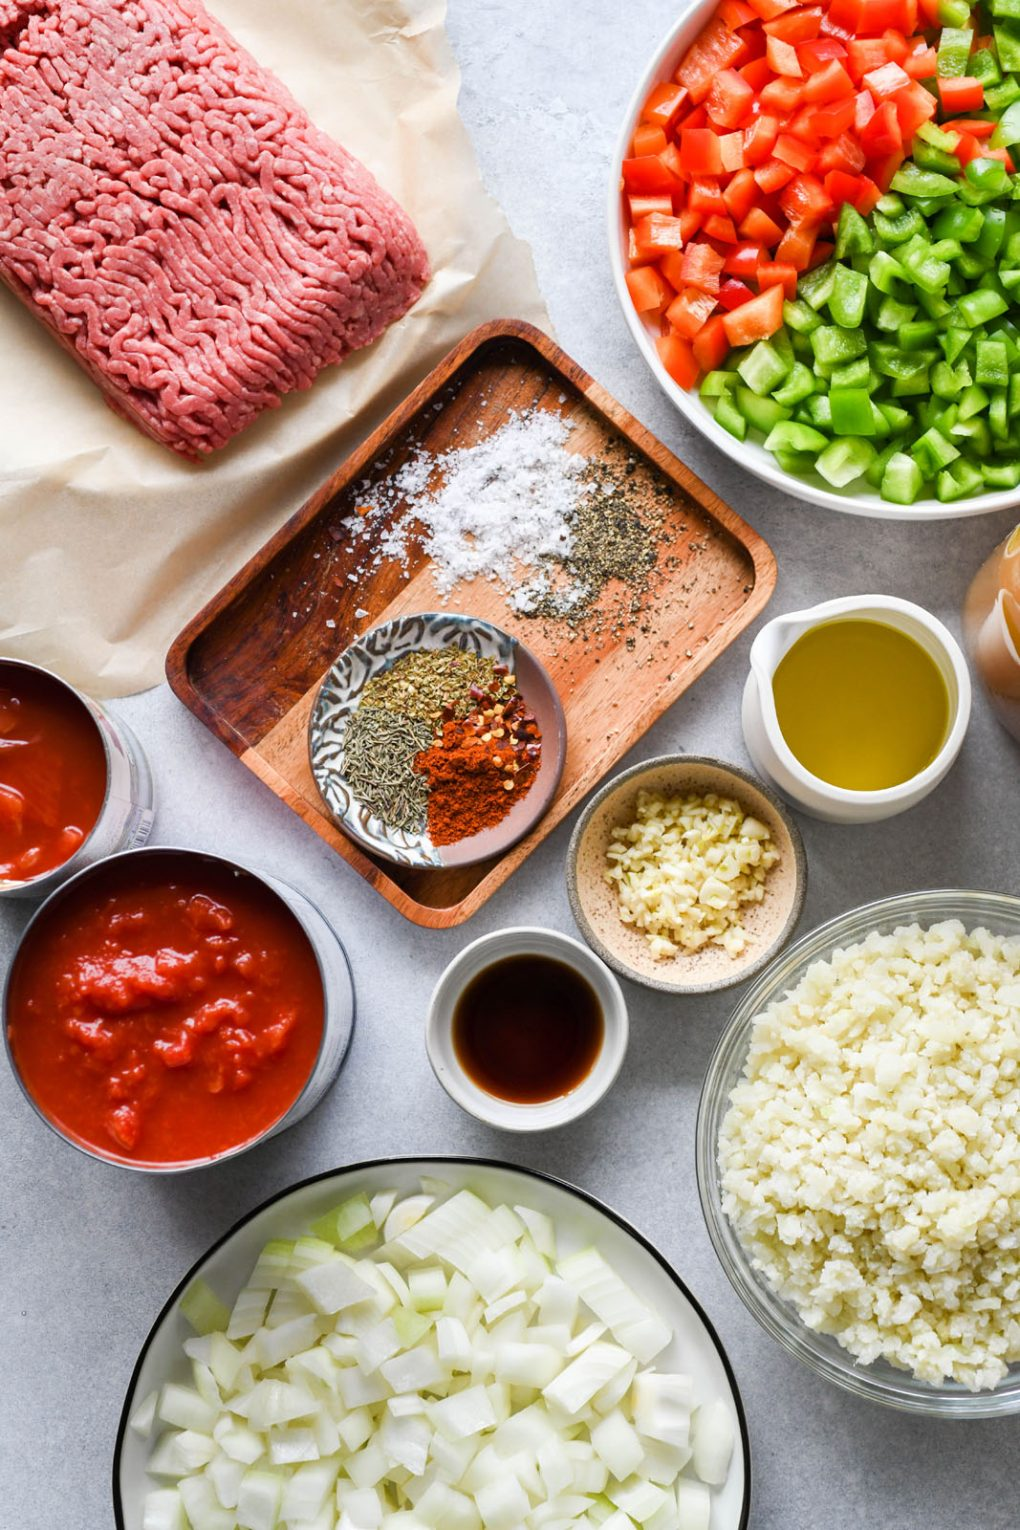 Overhead shot of the ingredients for stuffed pepper soup - Canned tomatoes, diced onions, diced bell peppers, ground beef, spices, olive oil, and cauliflower rice. On a light background.